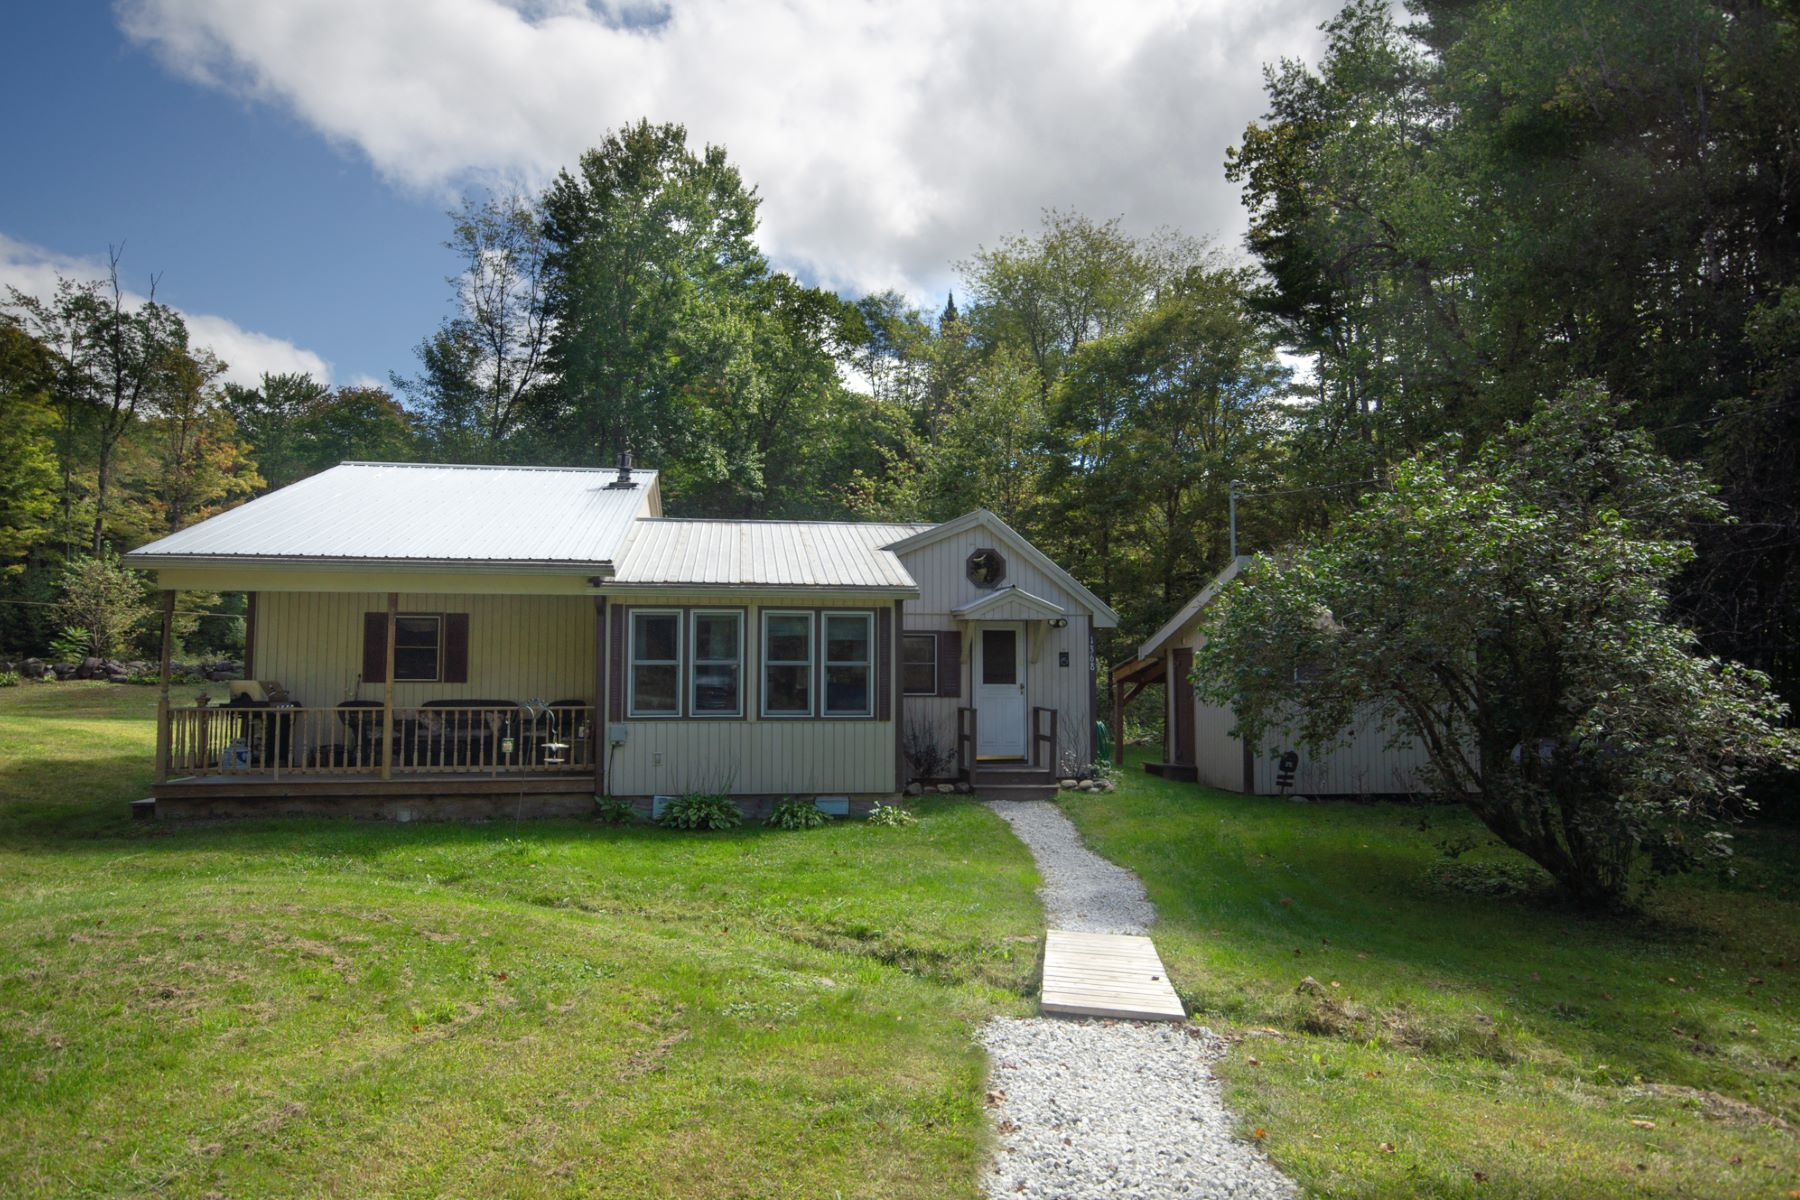 Single Family Homes for Sale at Two Bedroom Bungalow in Bradford 1368 Flanders Brook Rd Bradford, Vermont 05033 United States